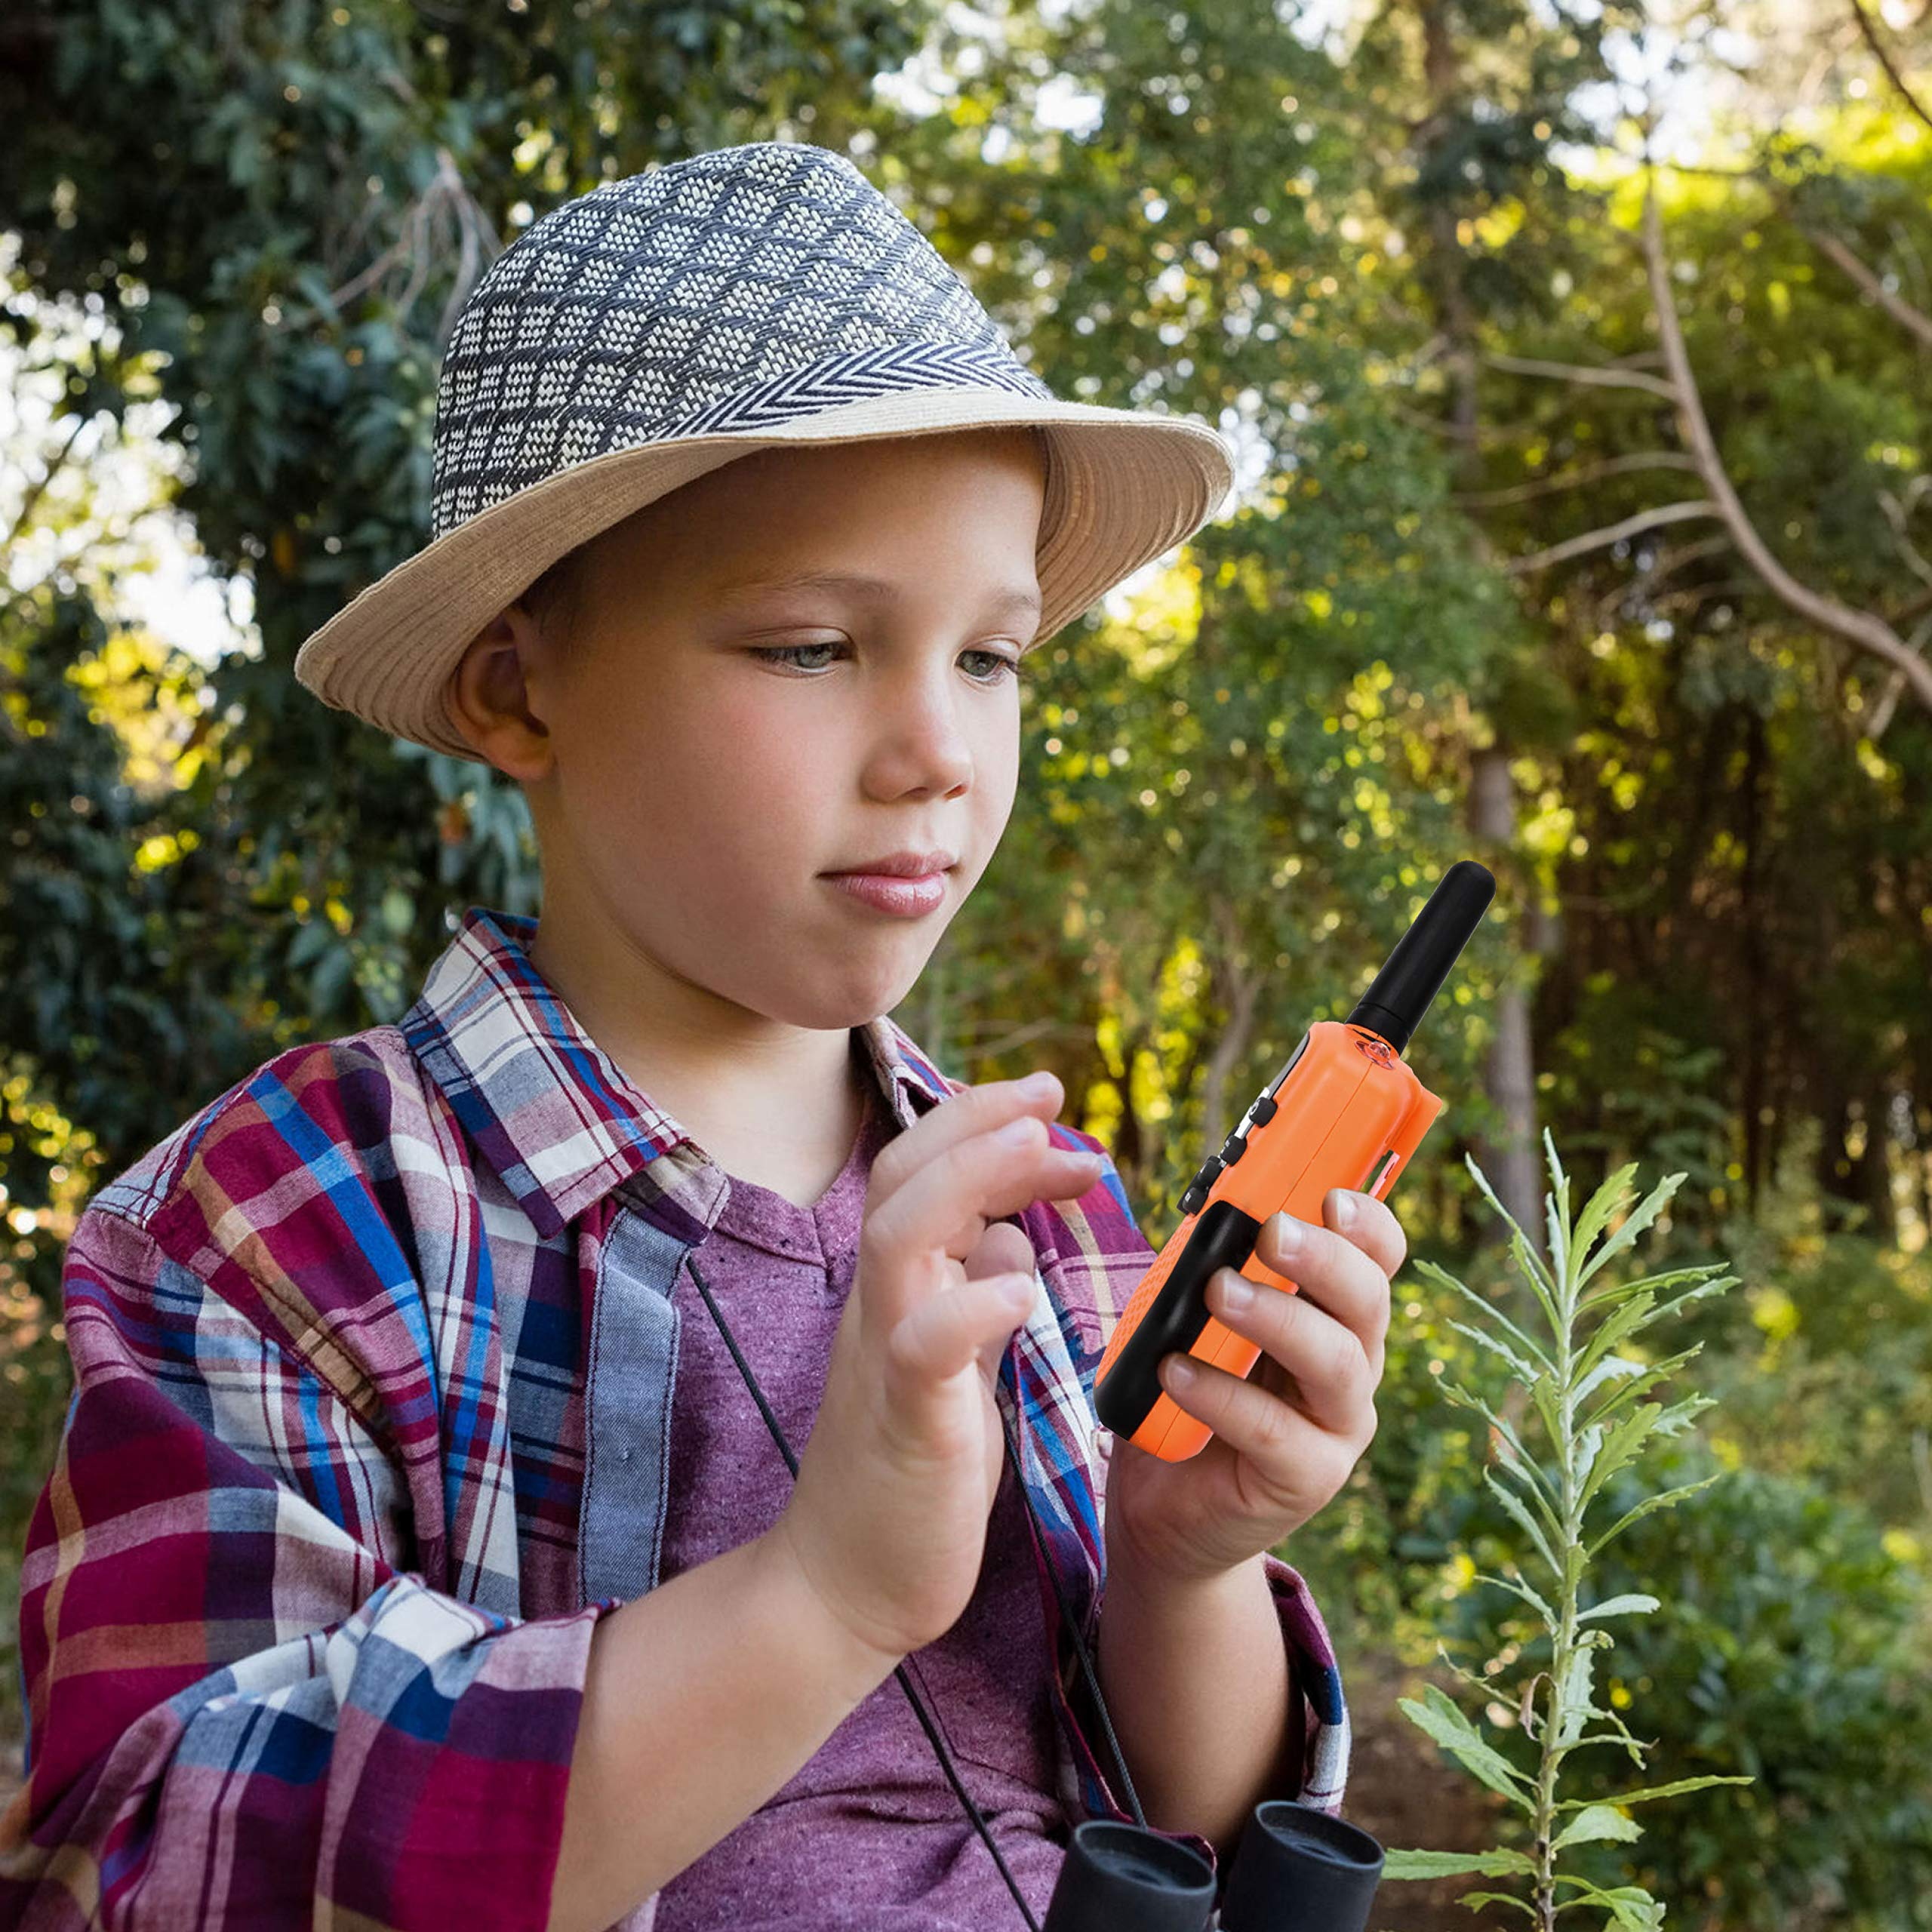 Walkie Talkies for Kids - (Vox Box) Voice Activated Walkie Talkies Toy for Kids, Two Way Radios Pair for Boys & Girls, Limited Edition Color Best Gift Long Range 3+ Miles Children's Walkie Talkie Set by MOBIUS Toys (Image #4)